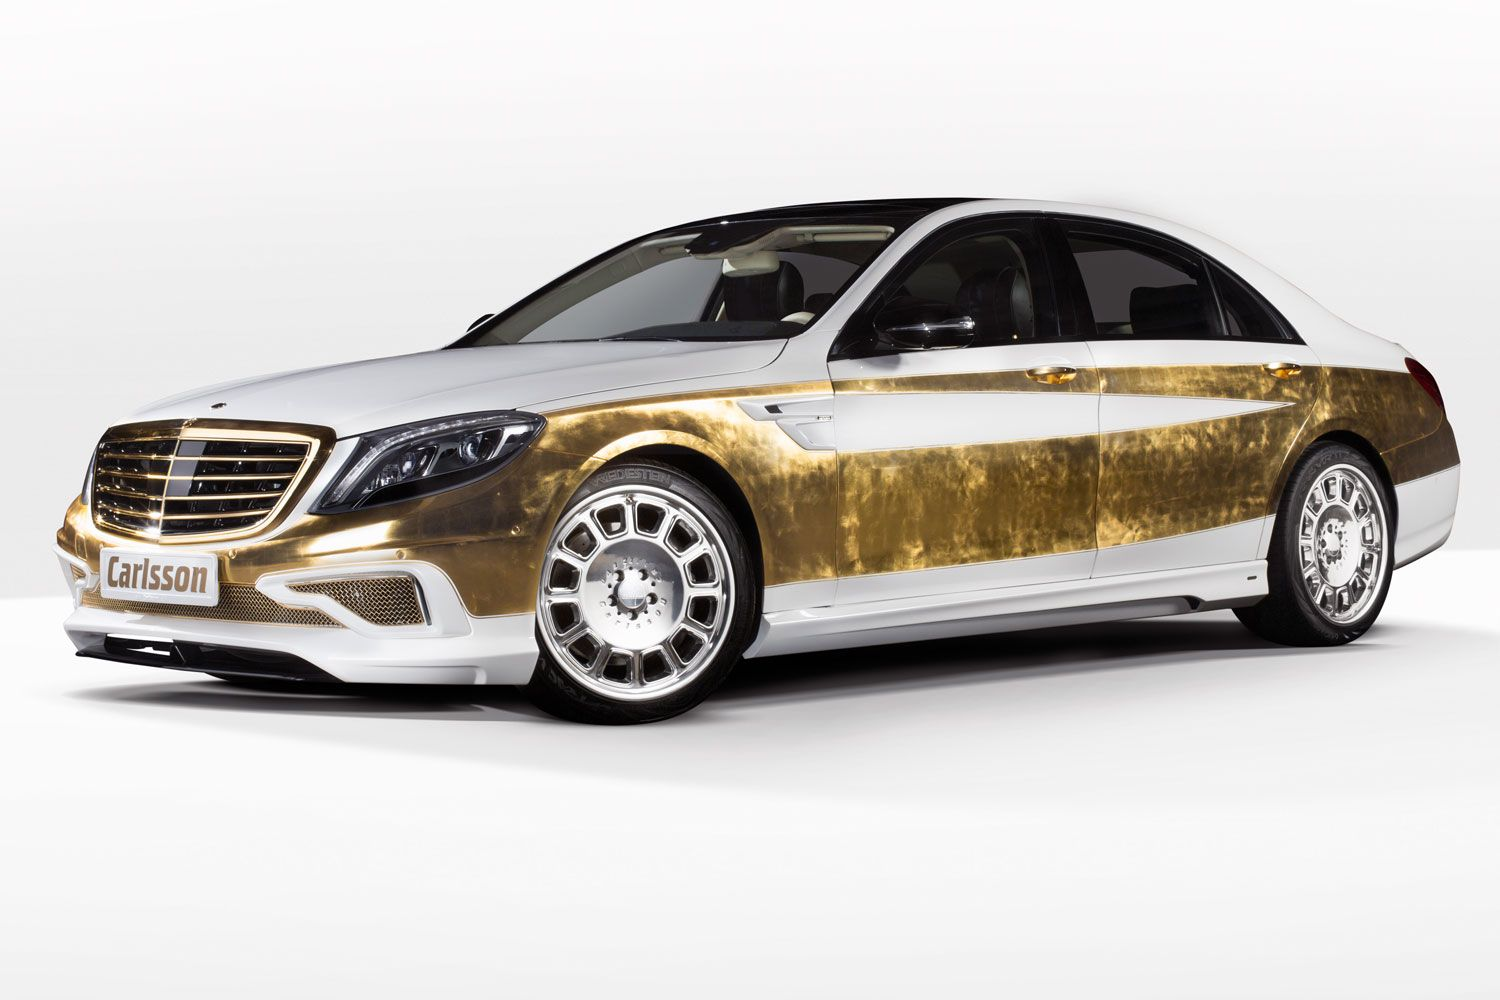 Black bison edition tuning package for the w204 mercedes benz c class - Carlsson Mercedes Cs50 Versailles Edition Tuning